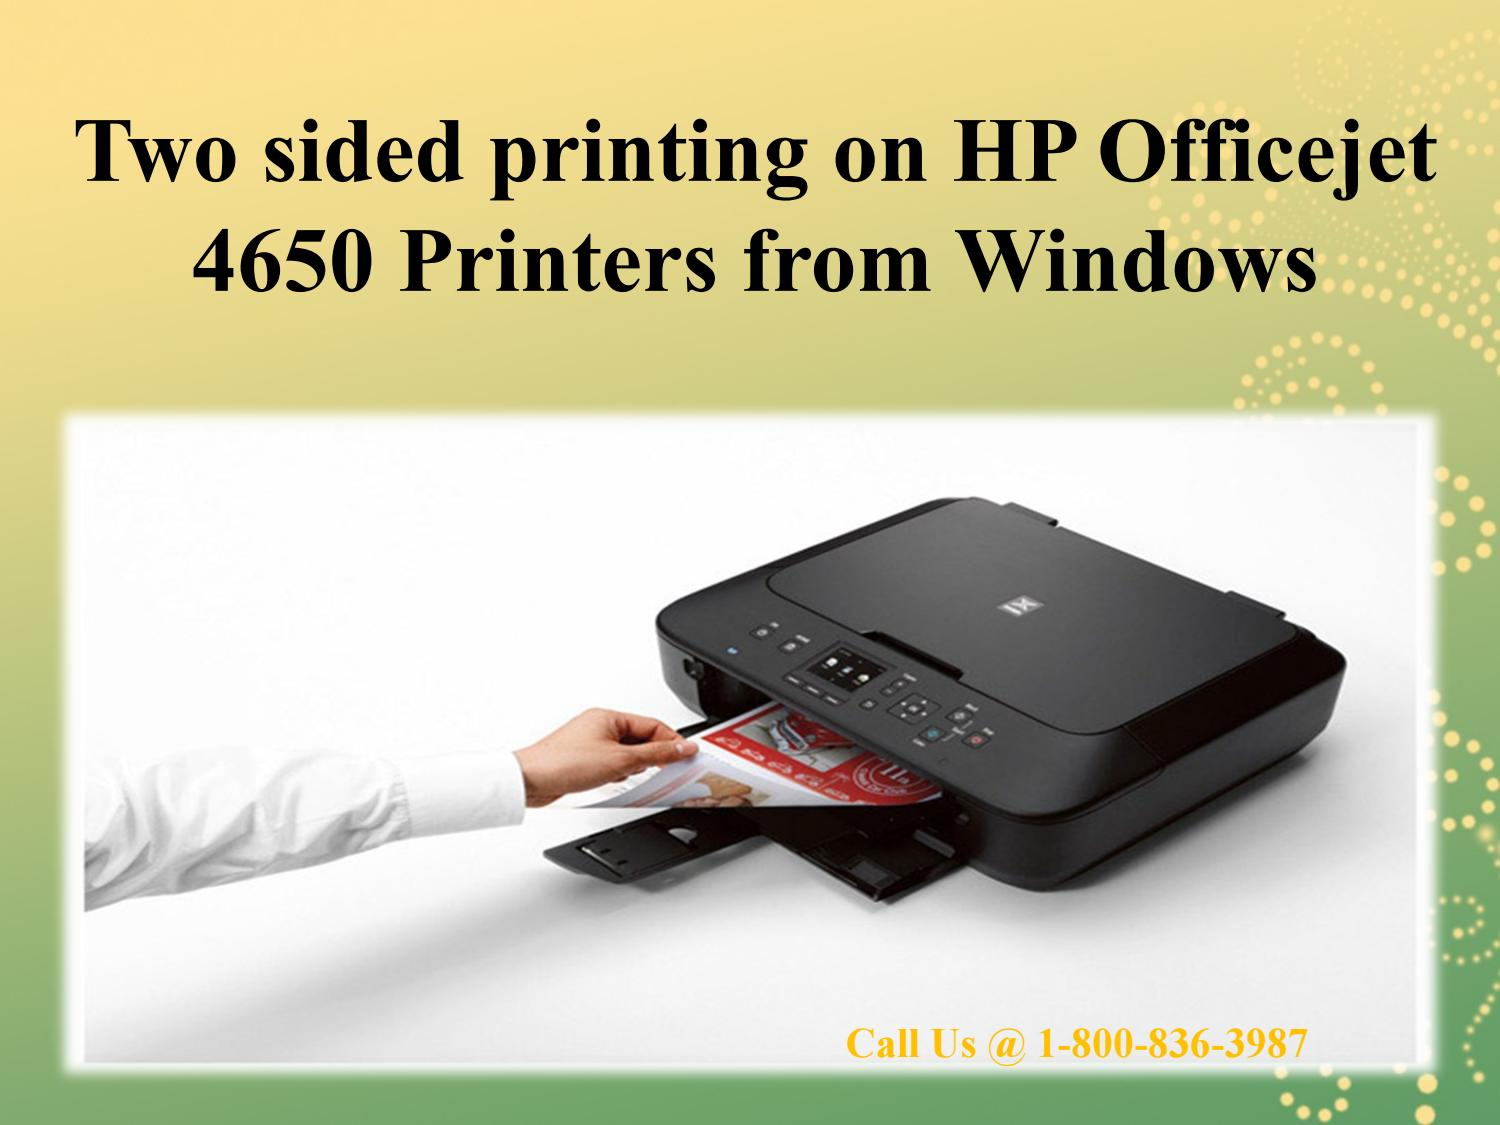 Two Sided Printing On Hp Officejet 4650 Printers From